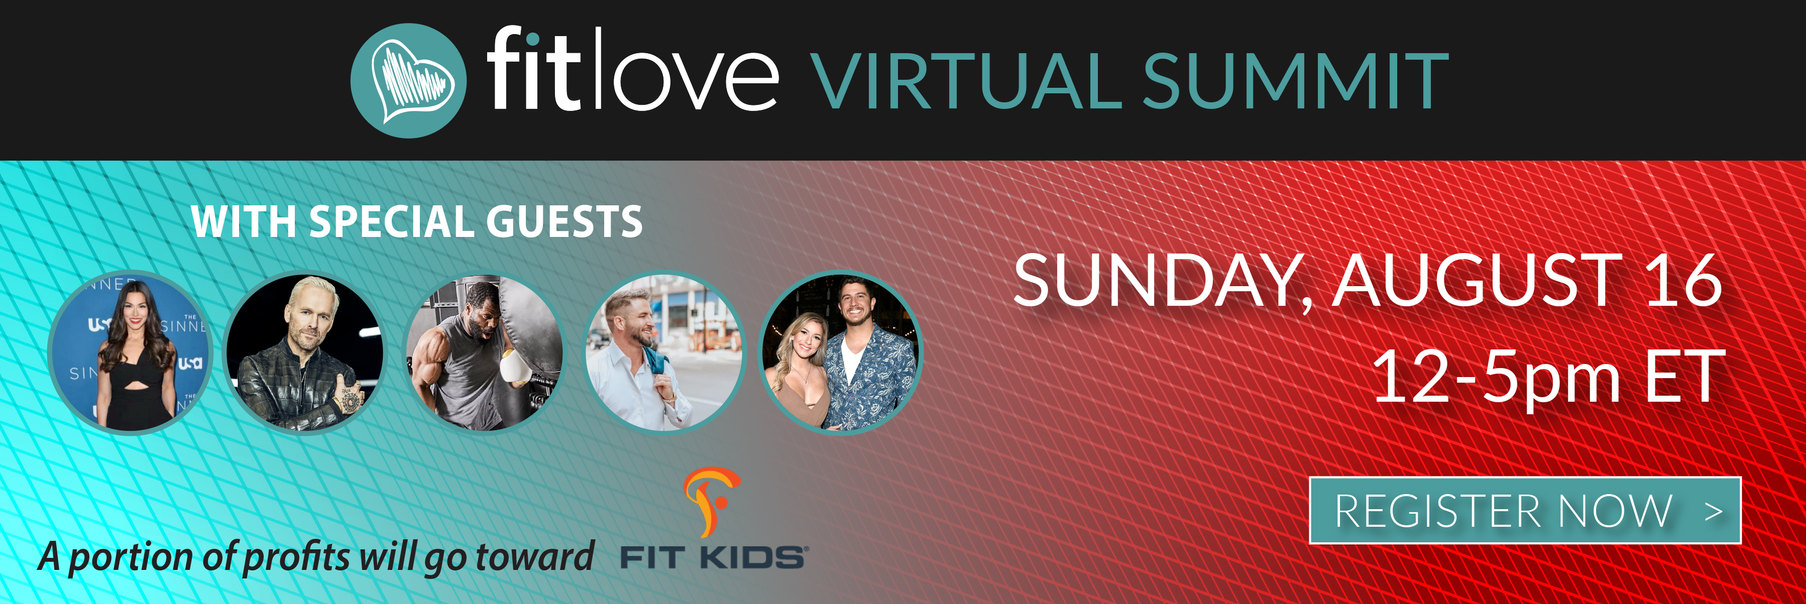 FitLove Virtual Summit Graphics